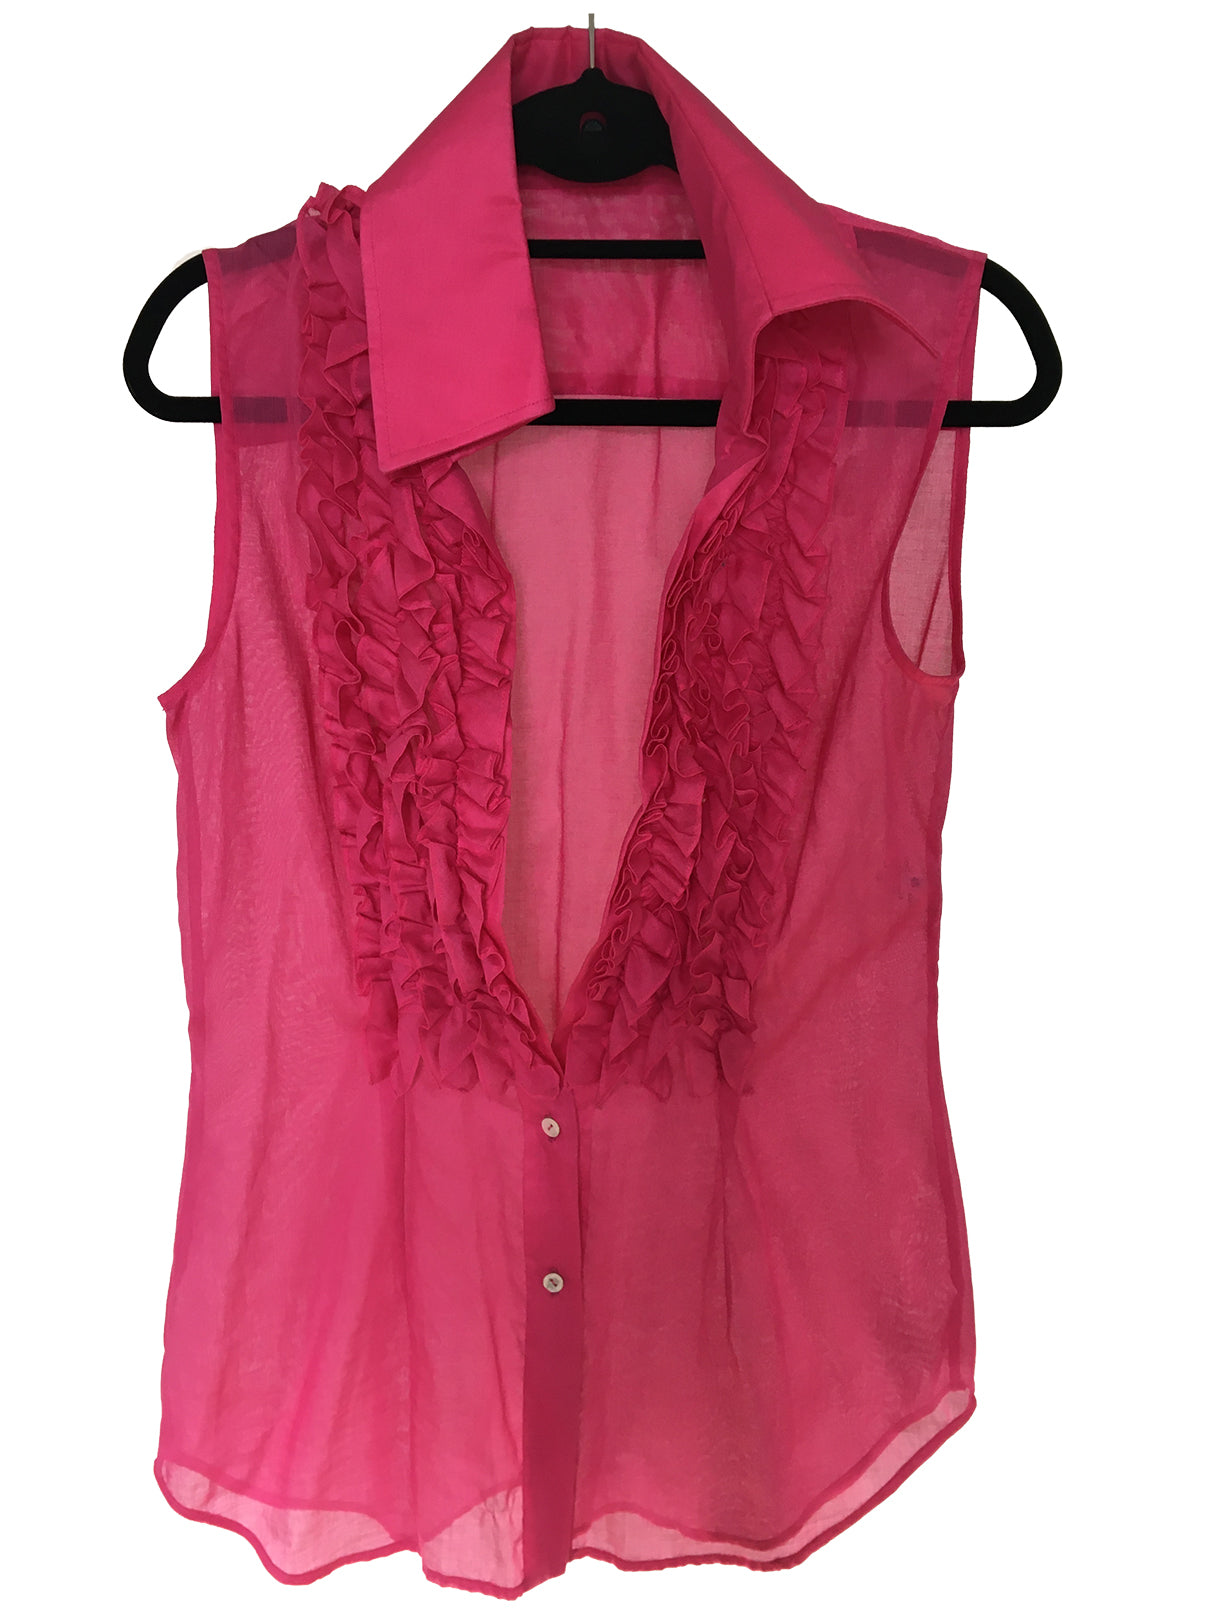 Dolce & Gabbana Ruffles Sleeveless Pink Blouse Size 42 (EU) 46 (IT)